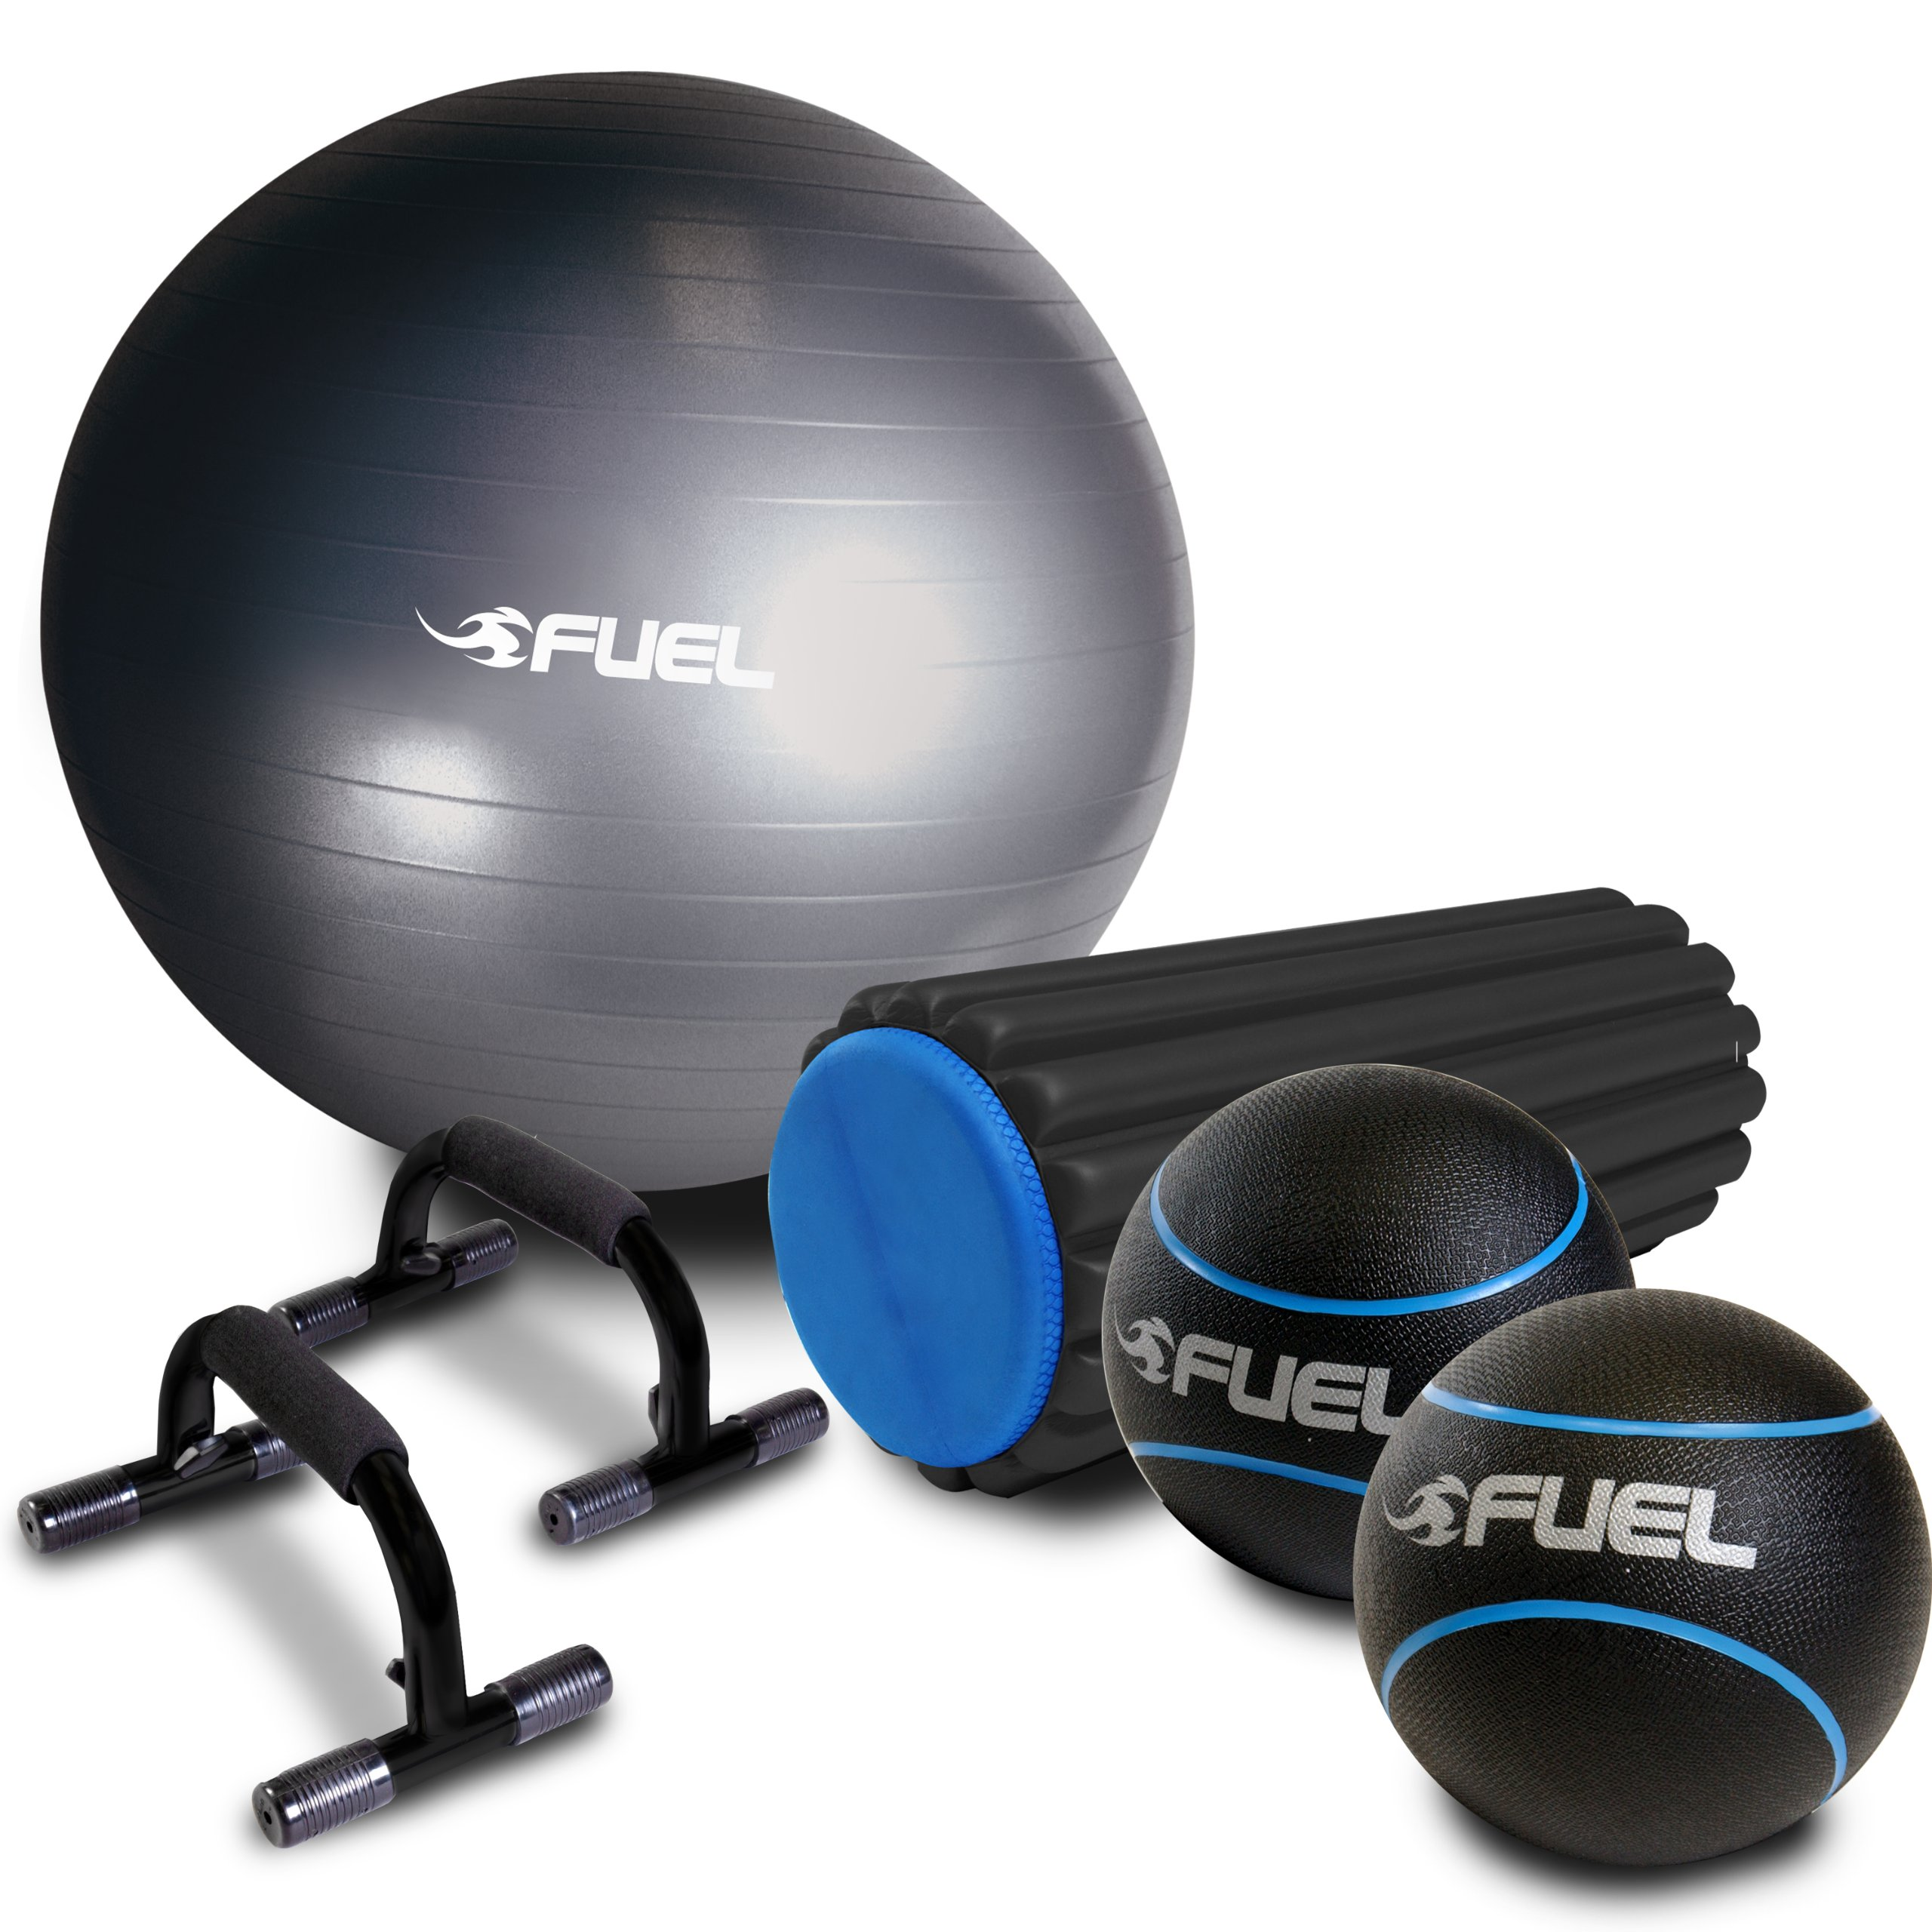 Fuel Pureformance Deluxe Core Training Set